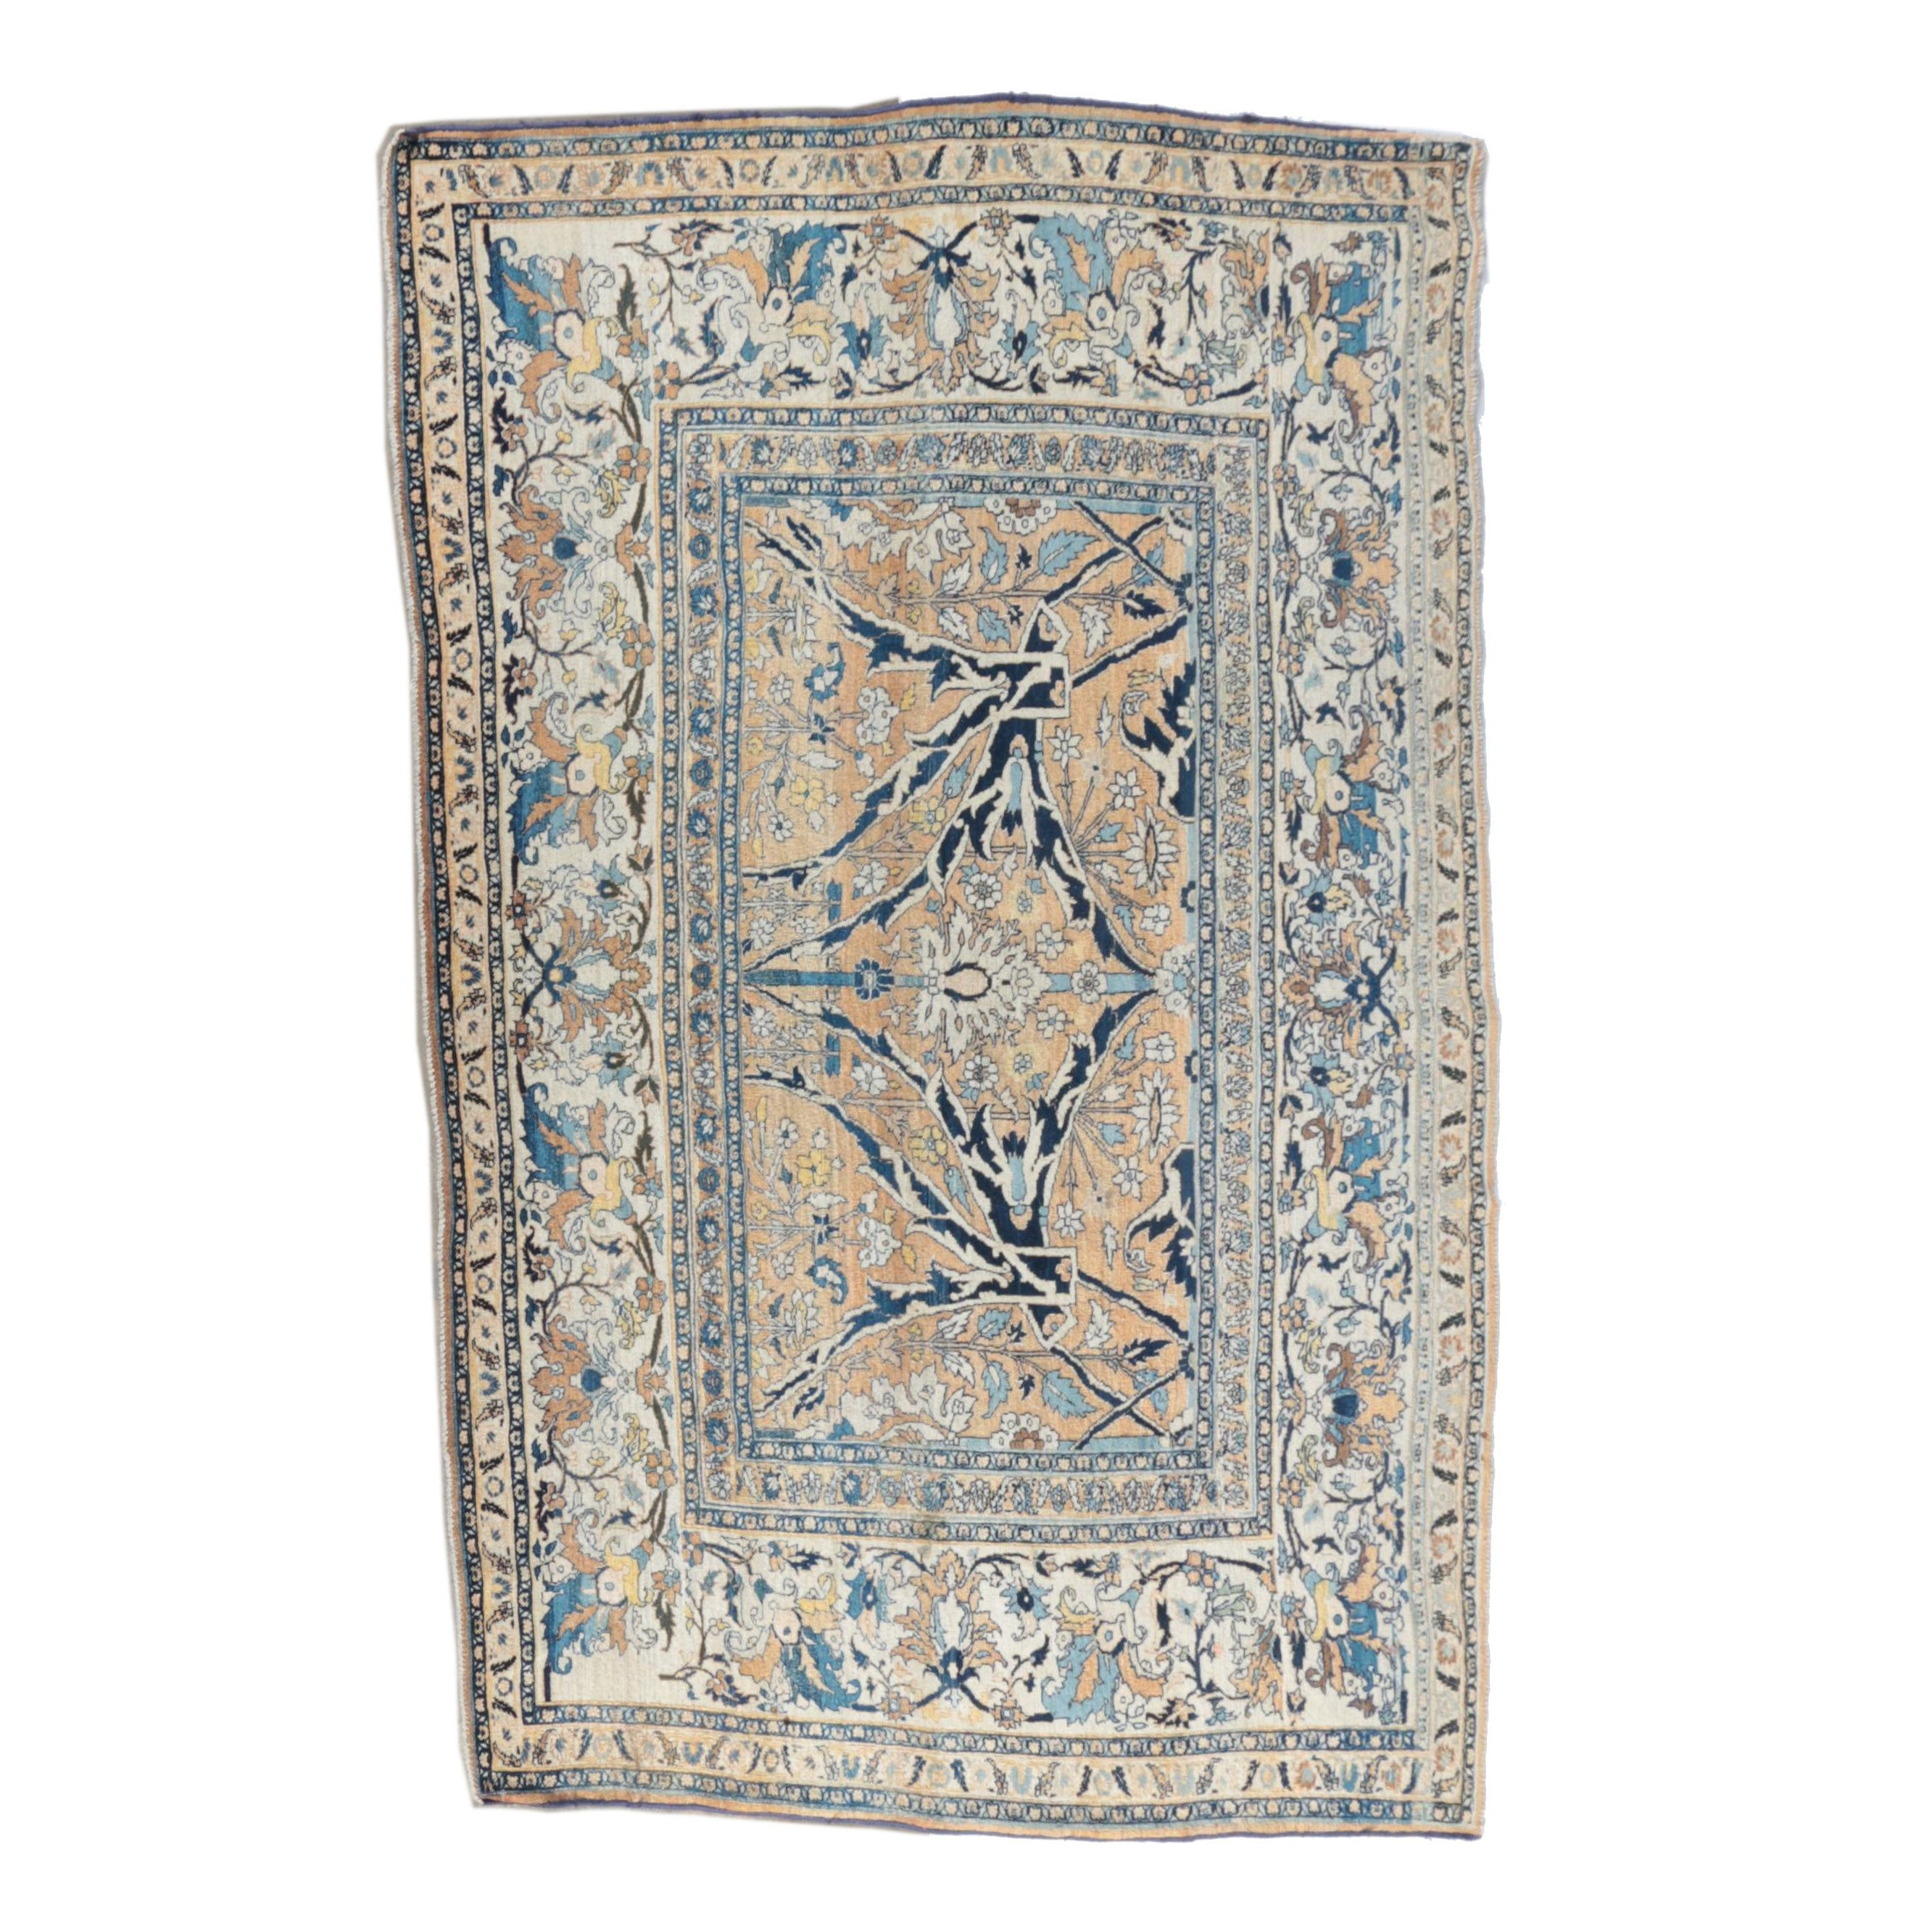 Hand-Knotted Semi-Antique Persian Tabriz Area Rug